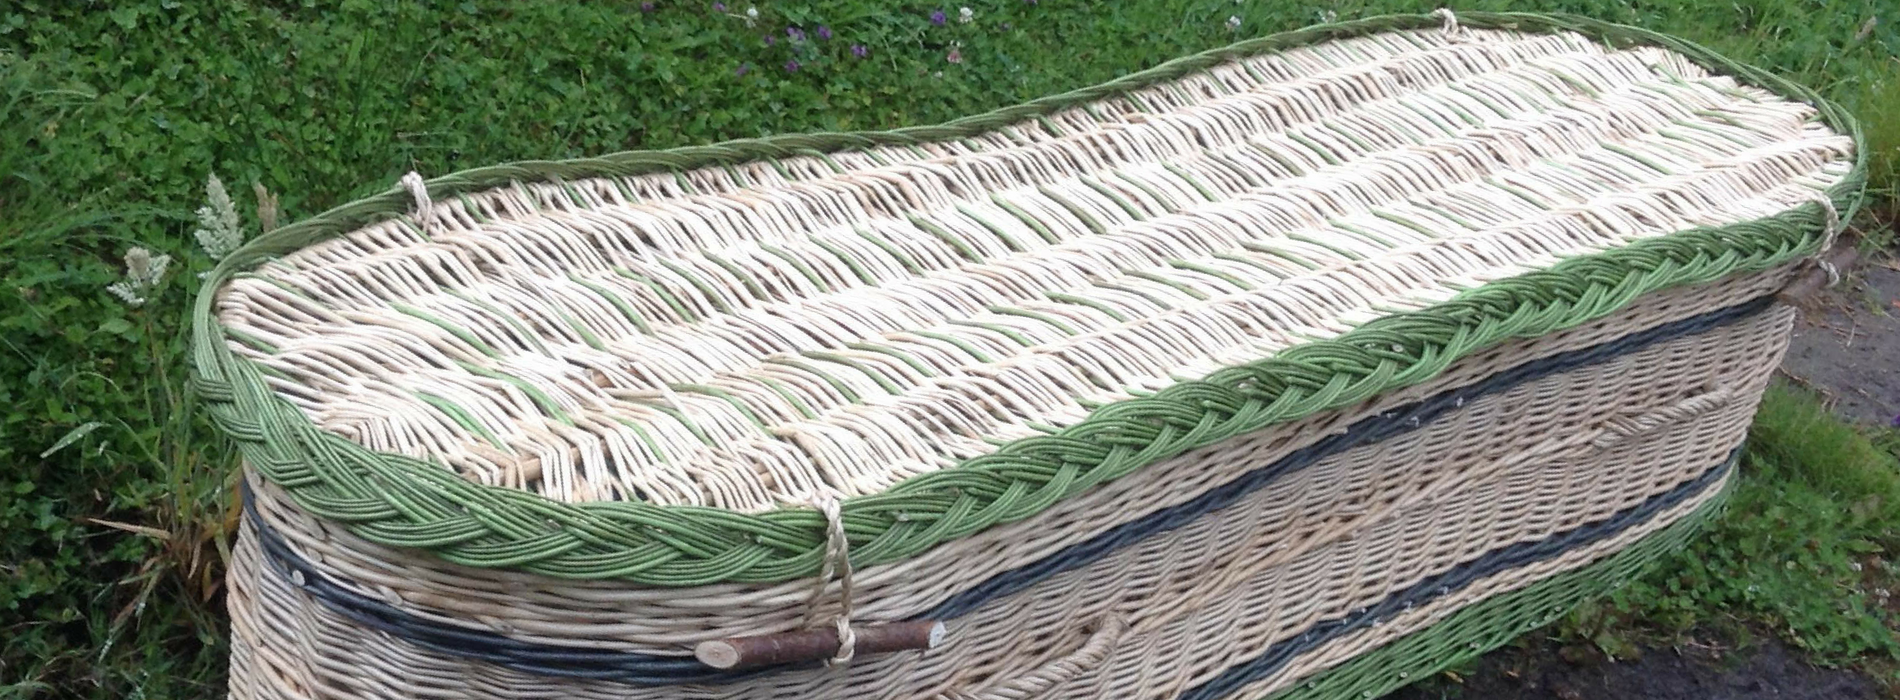 Willow Wicker Coffin Wyldwood Willow Natural Burial